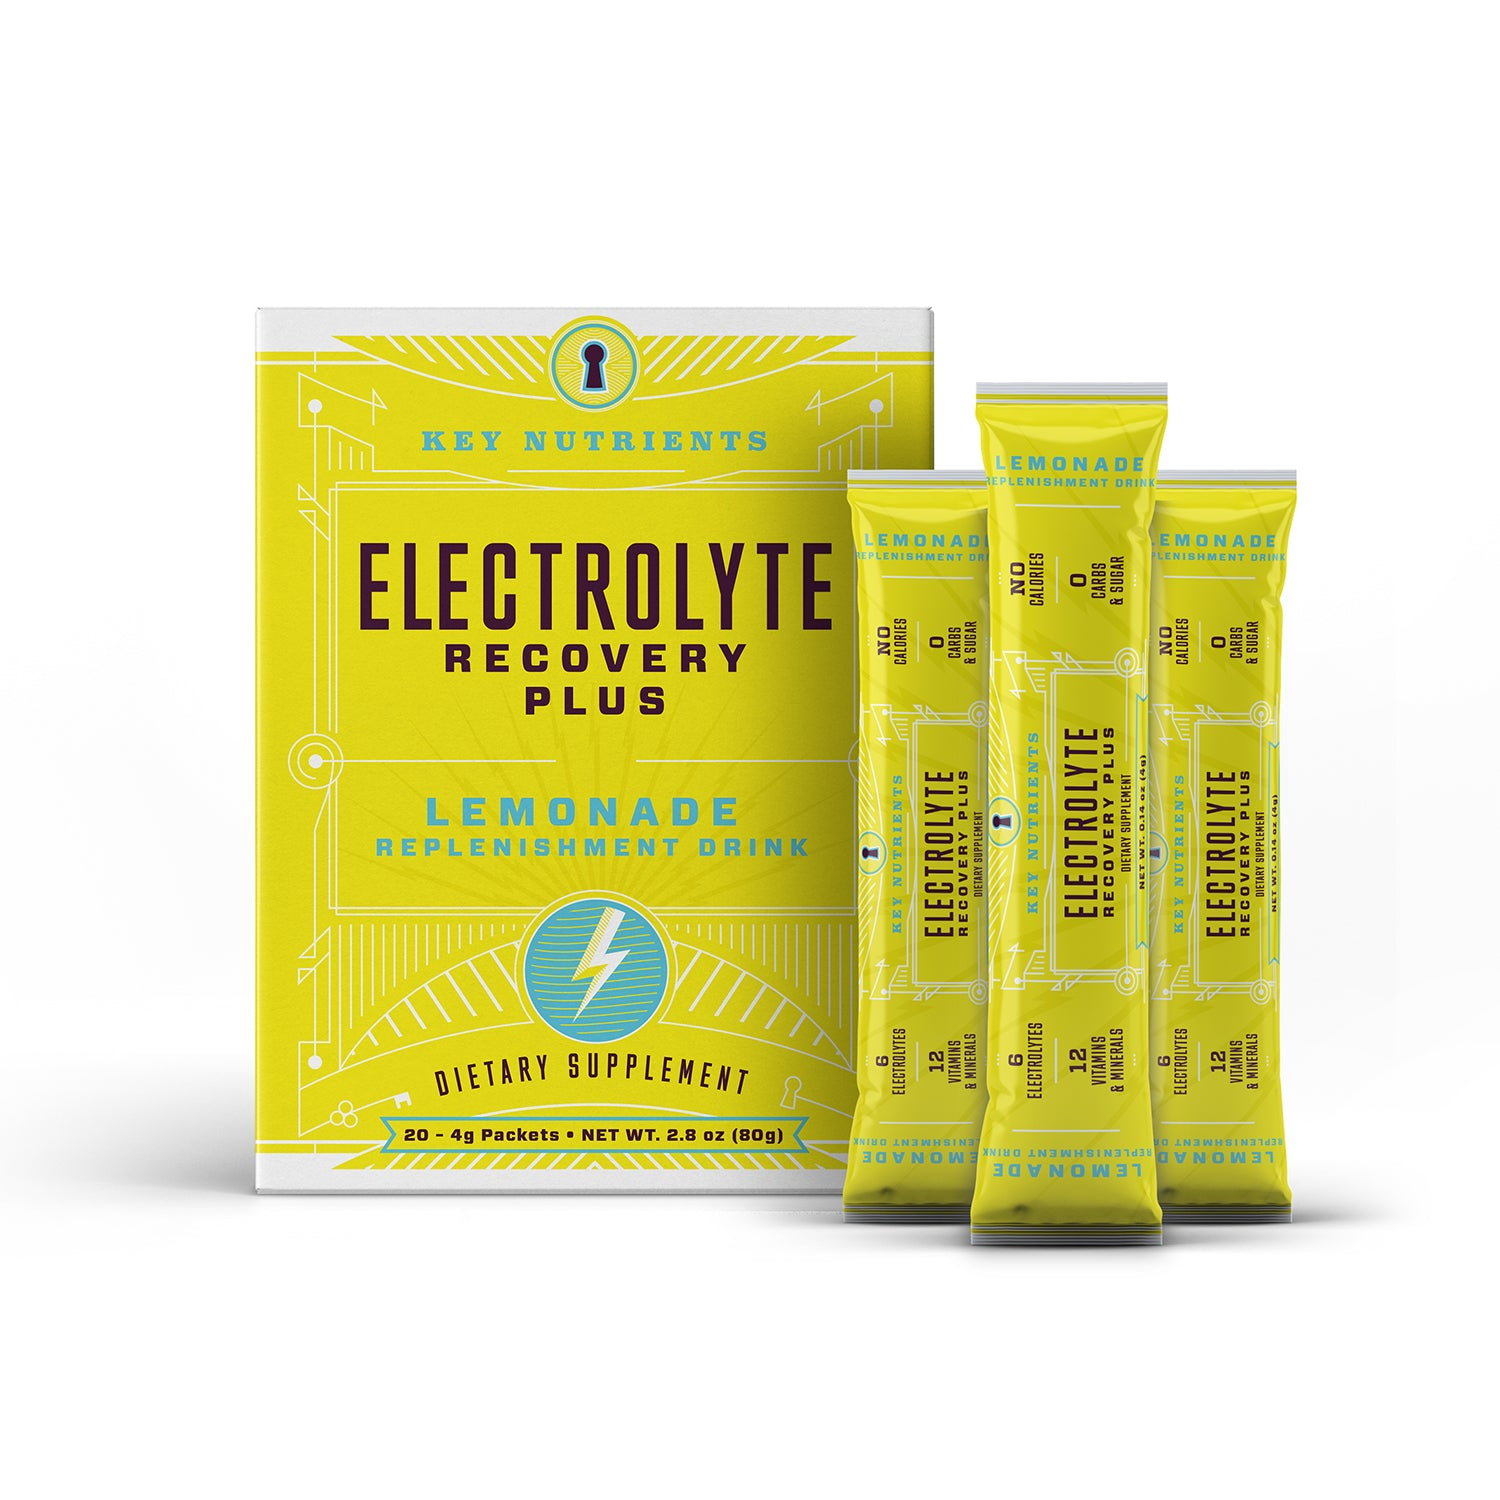 Electrolyte Recovery Plus - Lemonade Travel Packets - Pack of 20